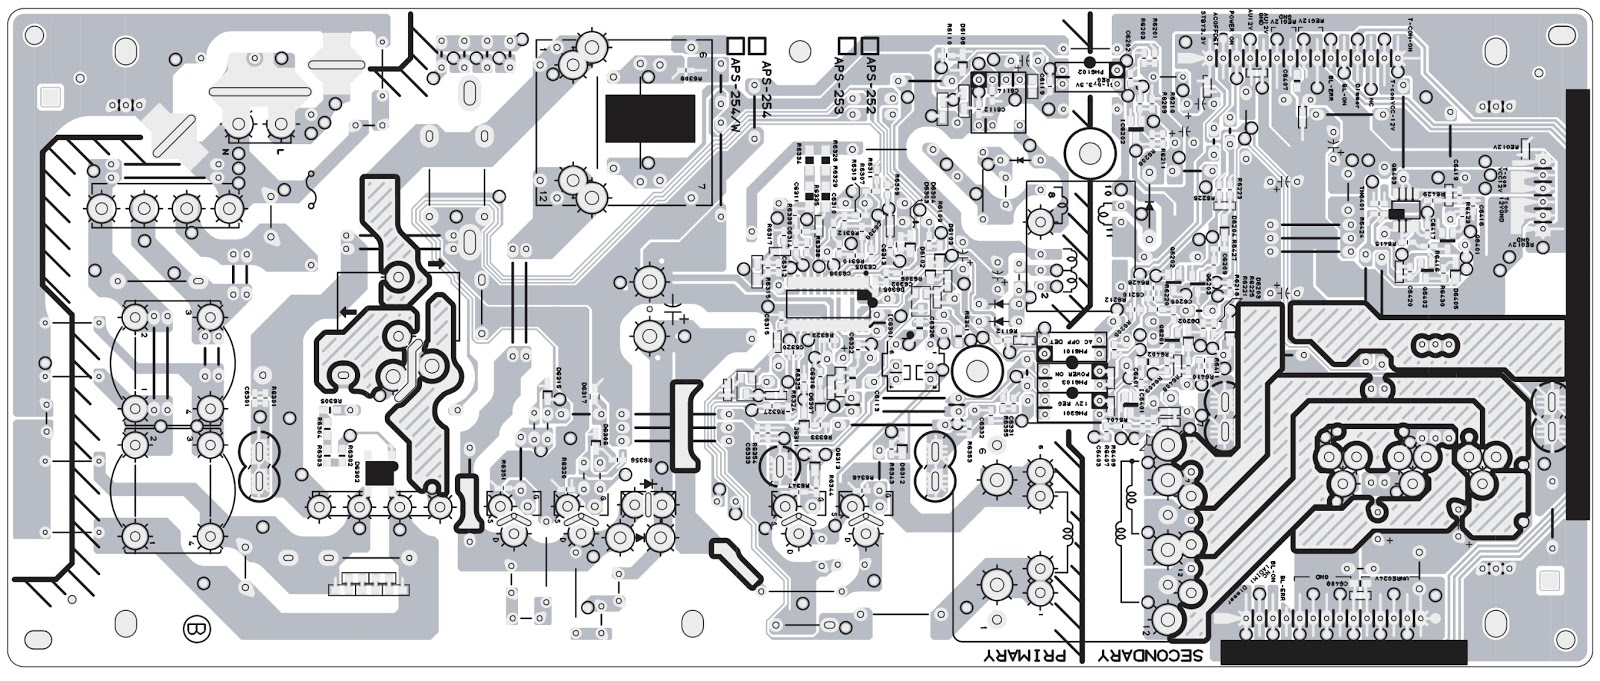 SONY    KLV   32BX300     KLV   40BX400  MAIN POWER SMPS     SCHEMATIC       DIAGRAM      Electro help